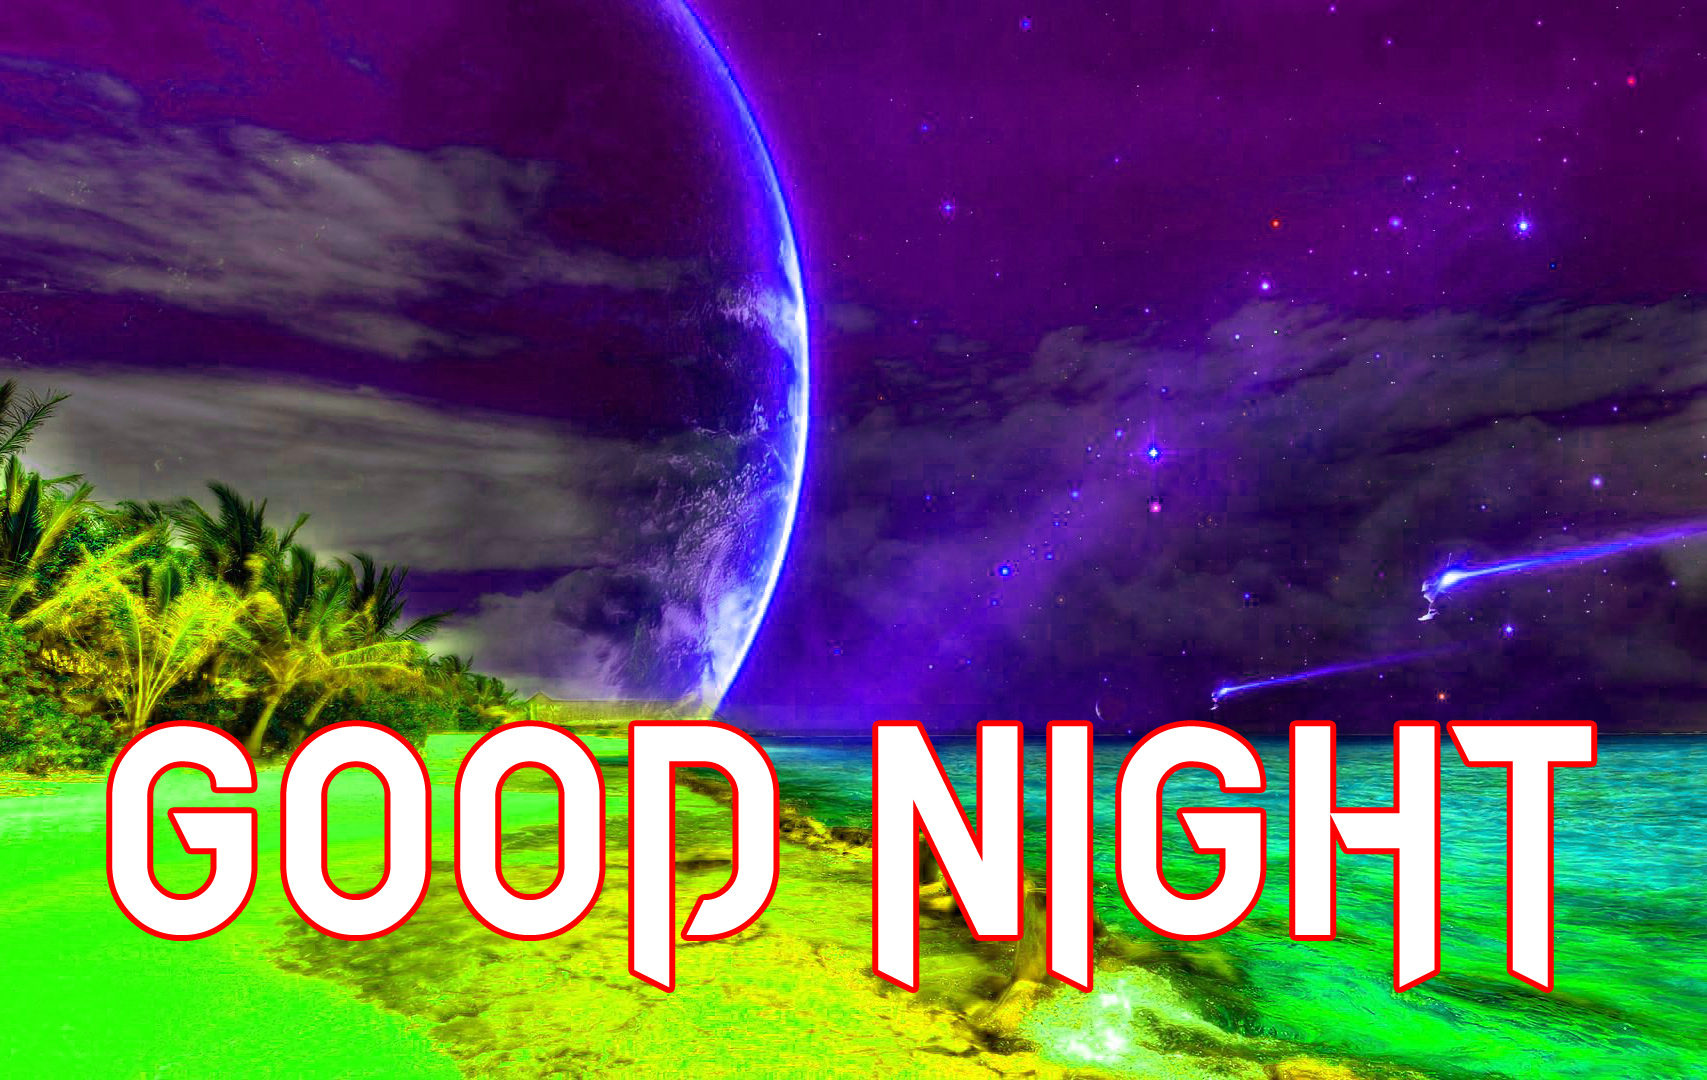 DOWNLOAD GOOD NIGHT IMAGES PICTURES PHOTO HD